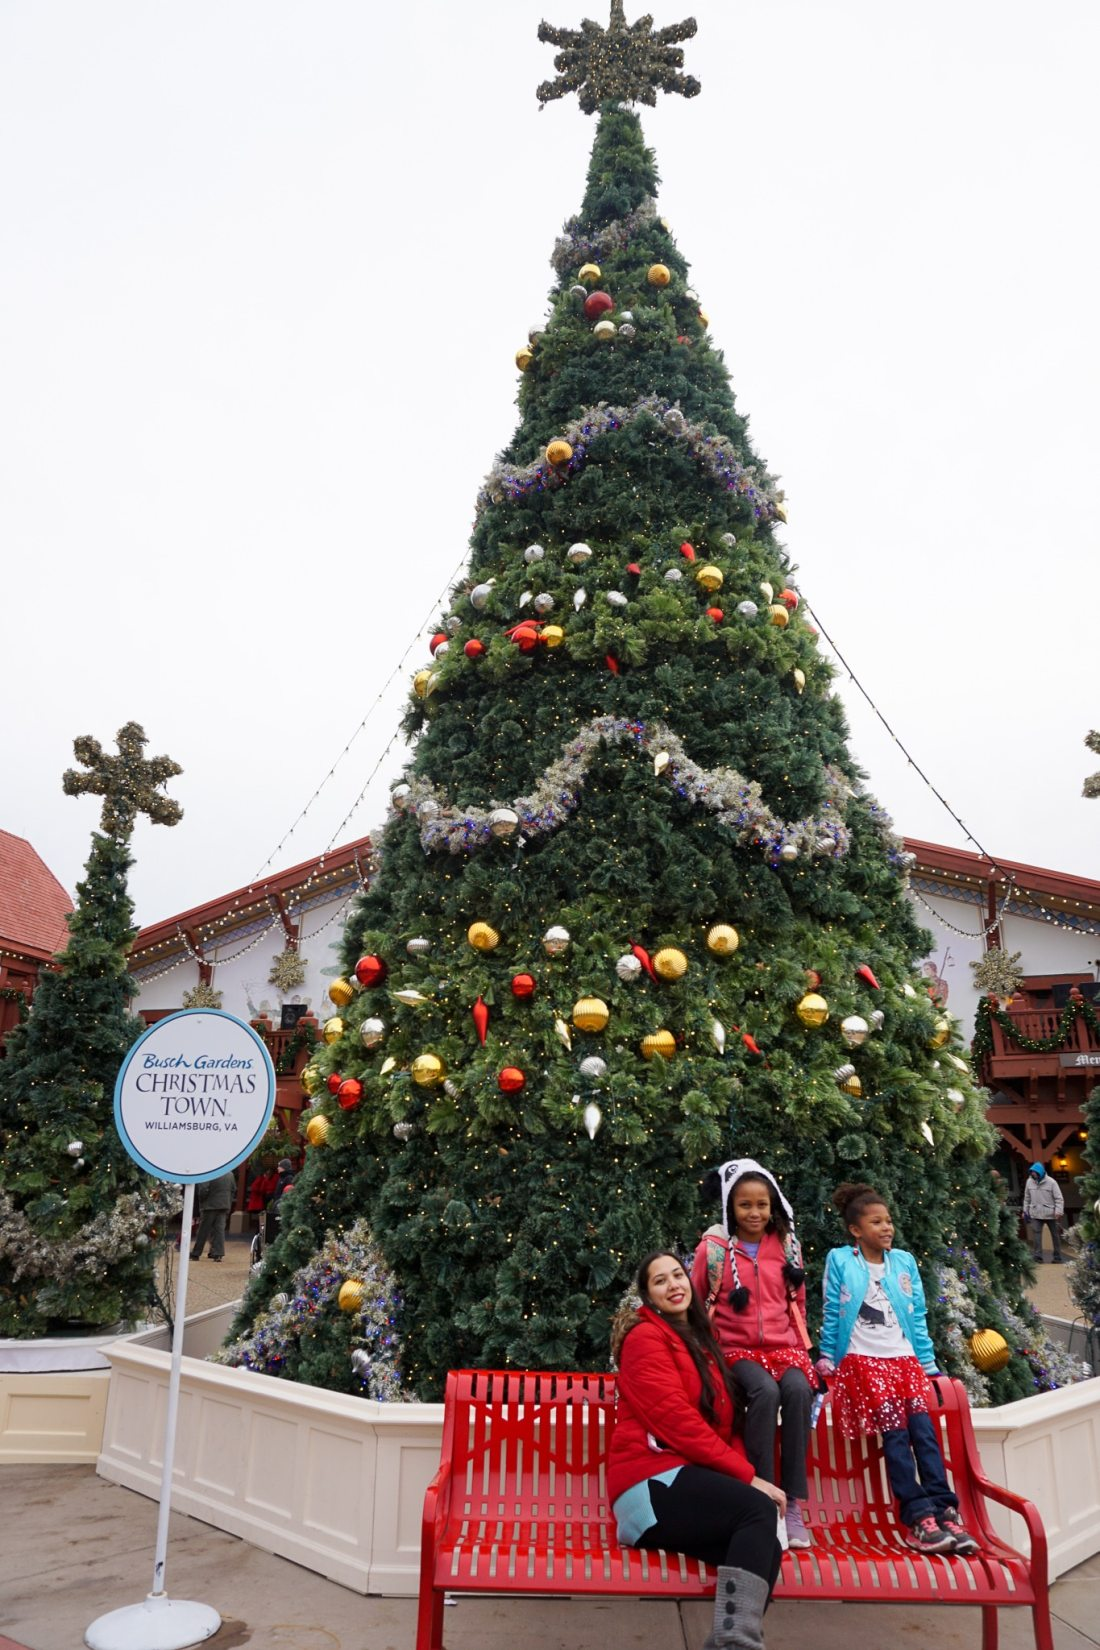 Christmas Town Busch Gardens Family Photo Christmas Tree. Instagram Worthy Walls and Locations around Busch Gardens Christmas Town in Williamsburg Virginia.